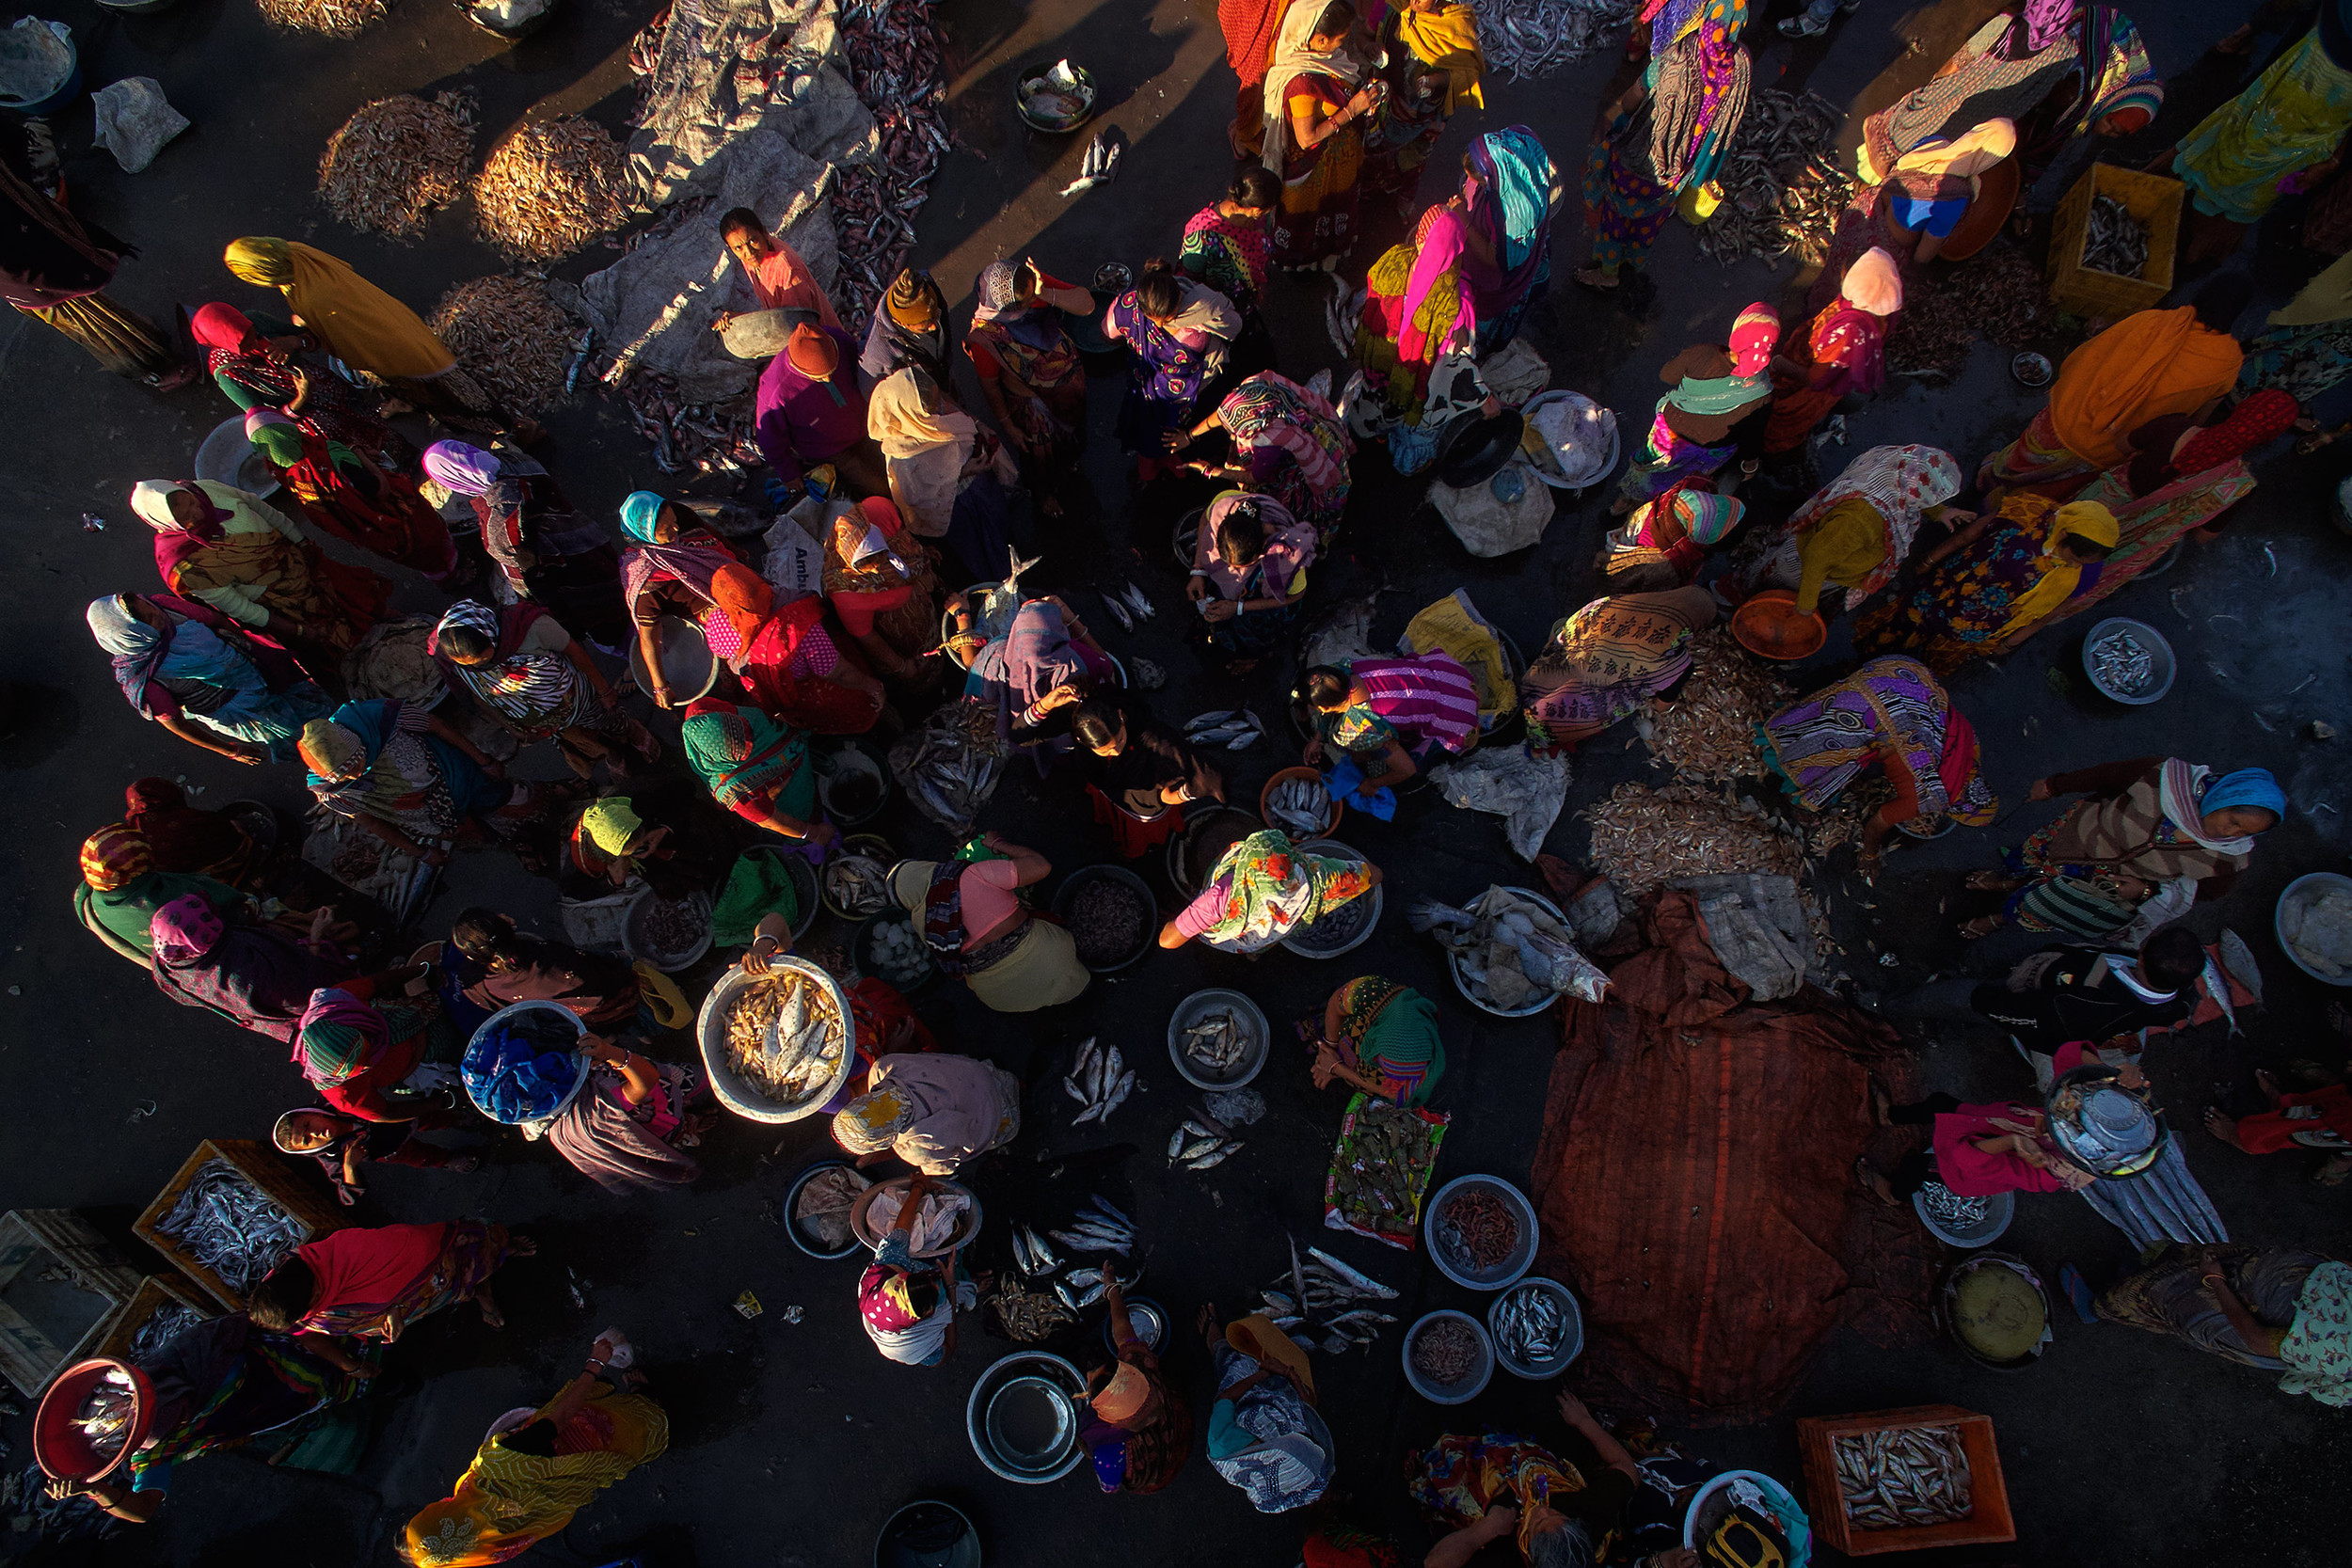 Market from above